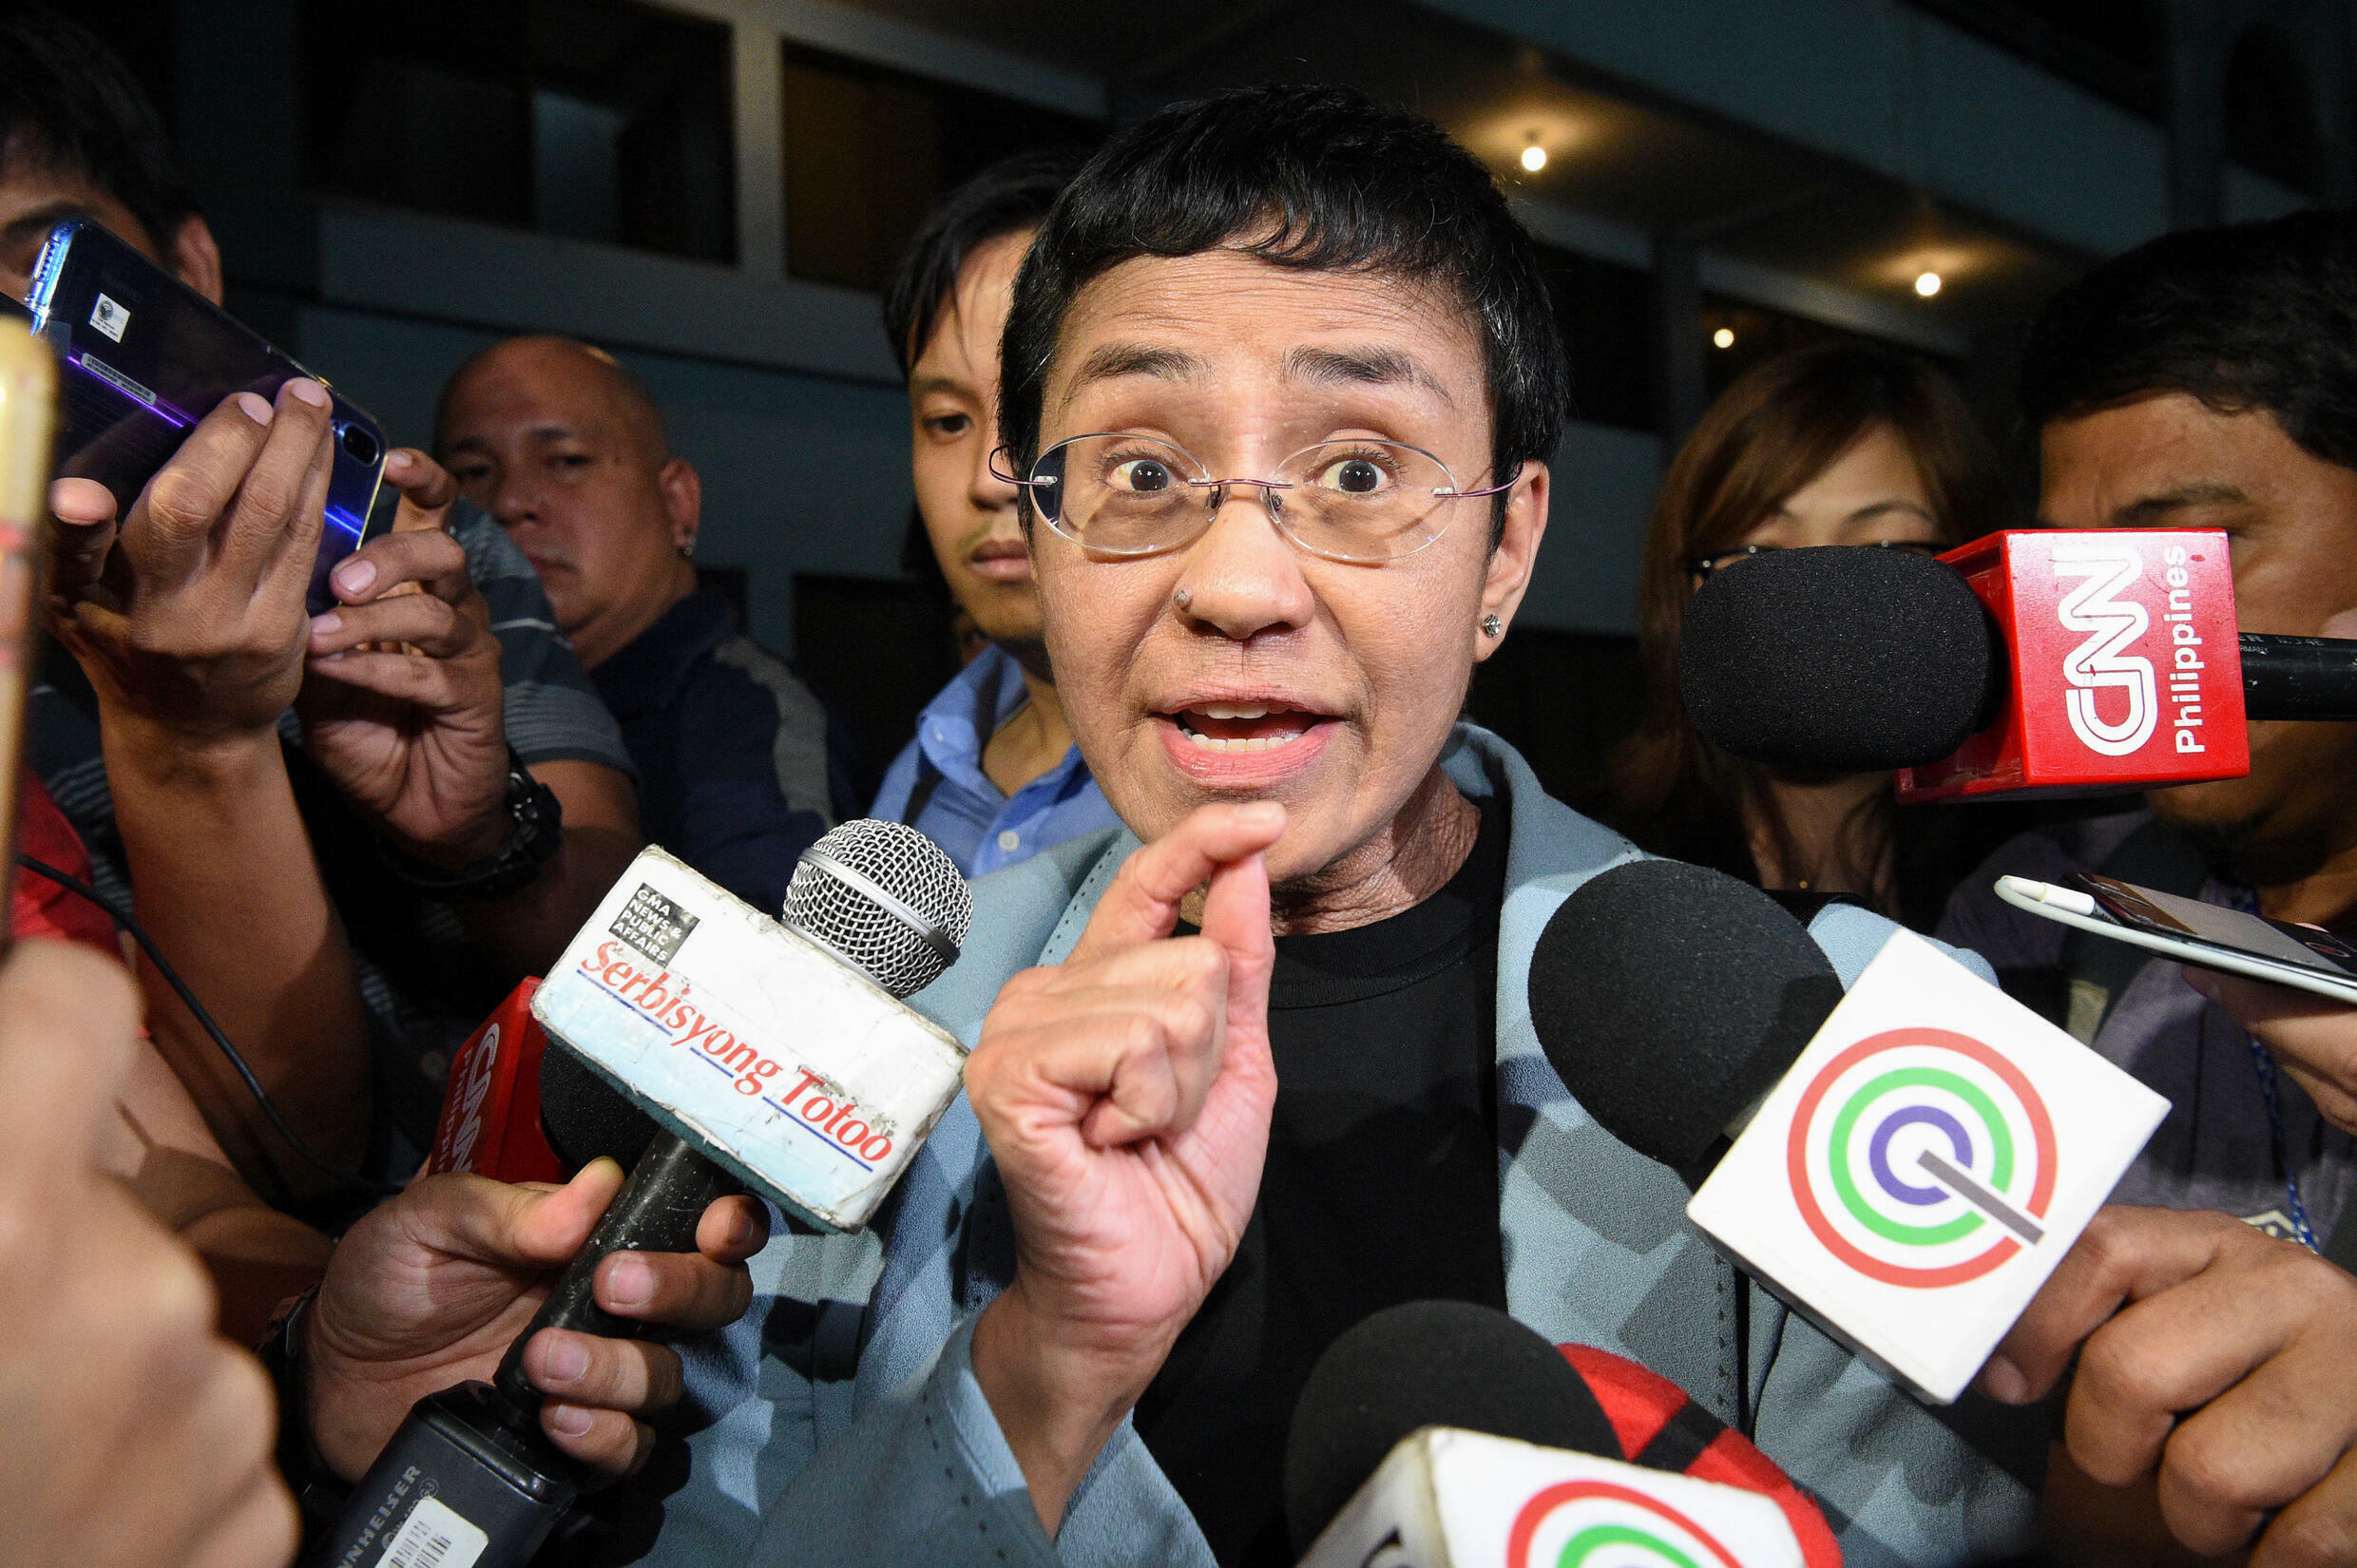 Maria Ressa has become a symbol of the fight for press freedom in an era of strongmen leaders